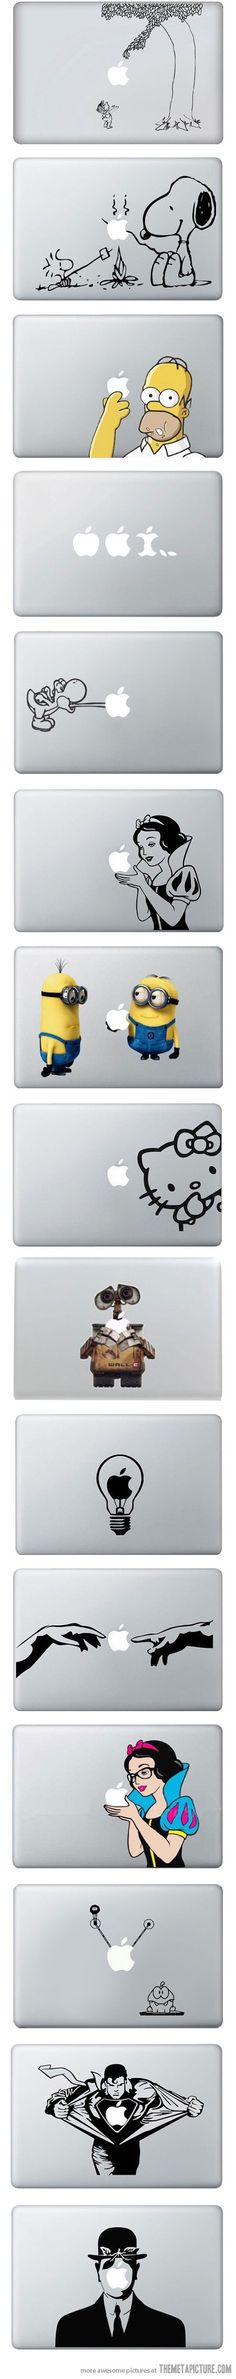 MacBook Vinyl Decals // Love Snoopy!